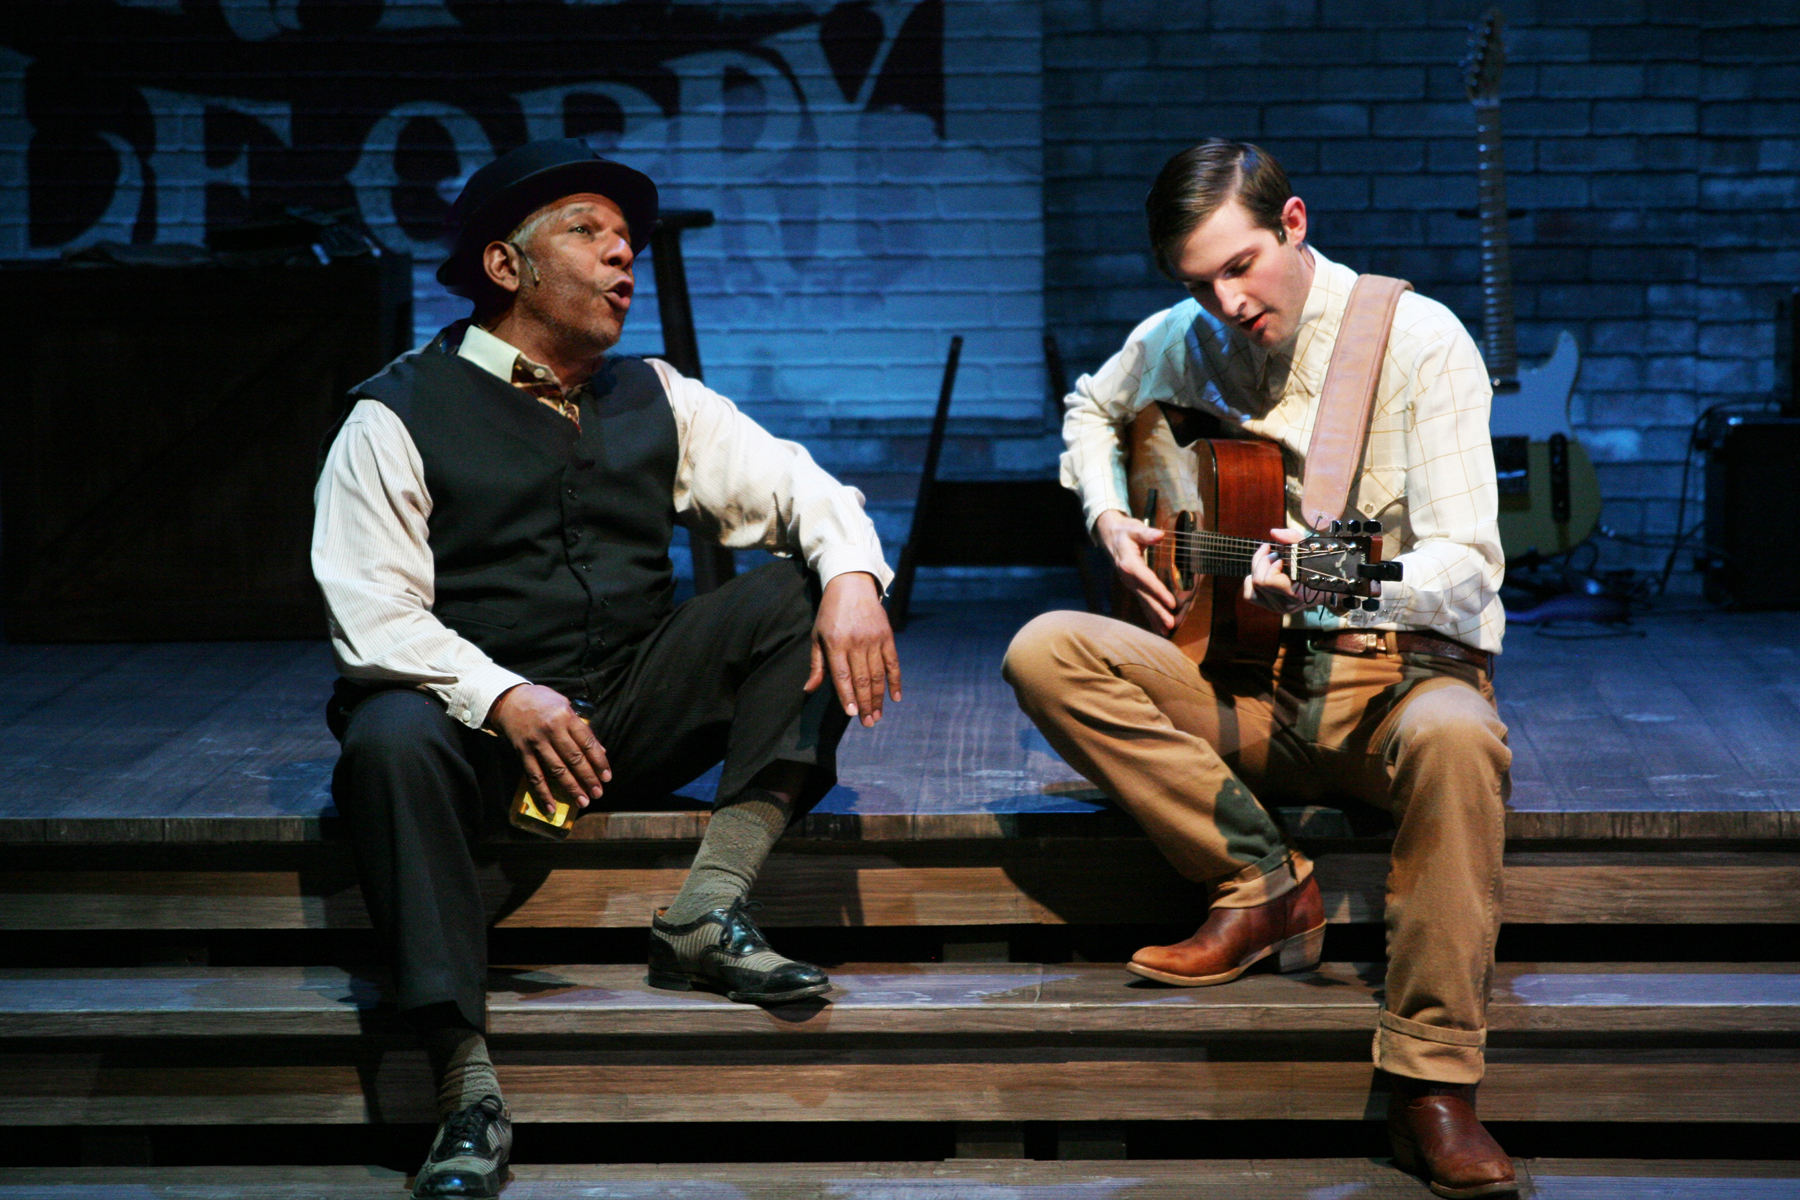 Dwight Mahabir, Kevin Singer.  Scenic Design by Liliana Duque Pineiro, Costume Design by Valera Coble, Lighting Design by Allen Willner, Sound Design by Lawton Lovely.  Photo by Terry Sullivan.